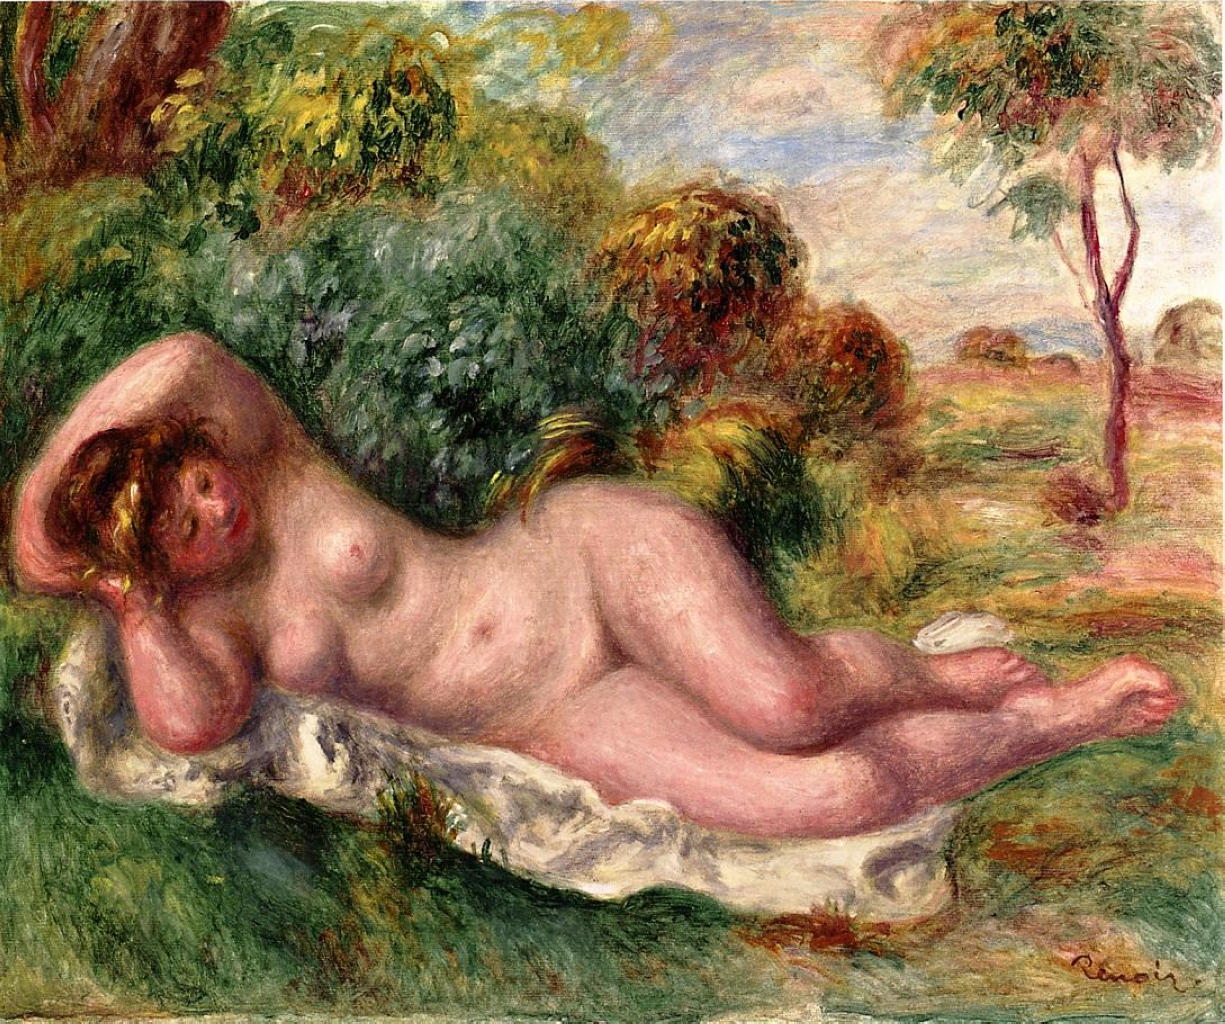 Reclining nude the baker's wife 1902